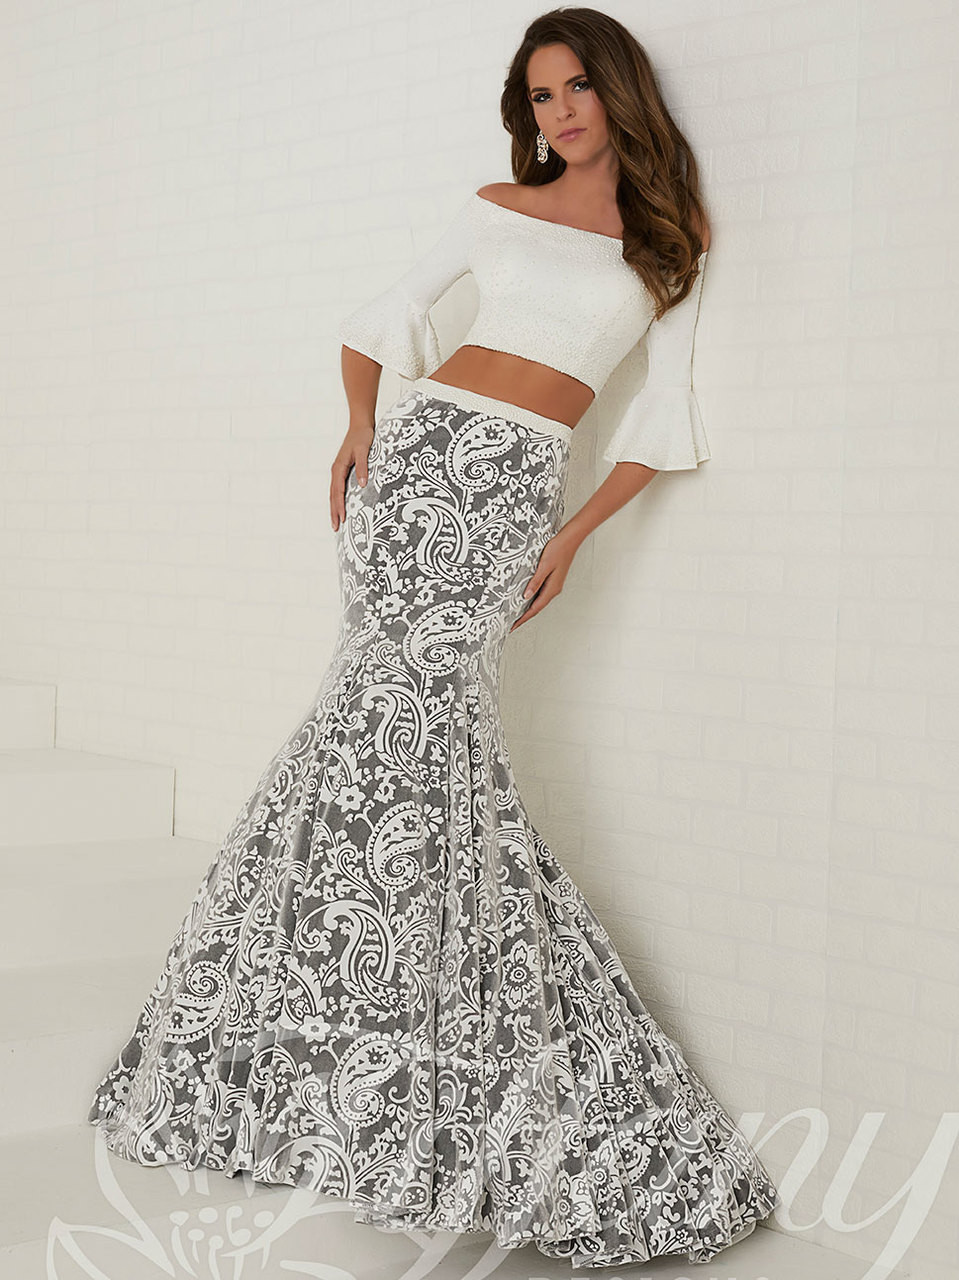 320d36d607fa Bell Sleeves Two Piece Tiffany Designs Prom Dress 16272. Free shipping